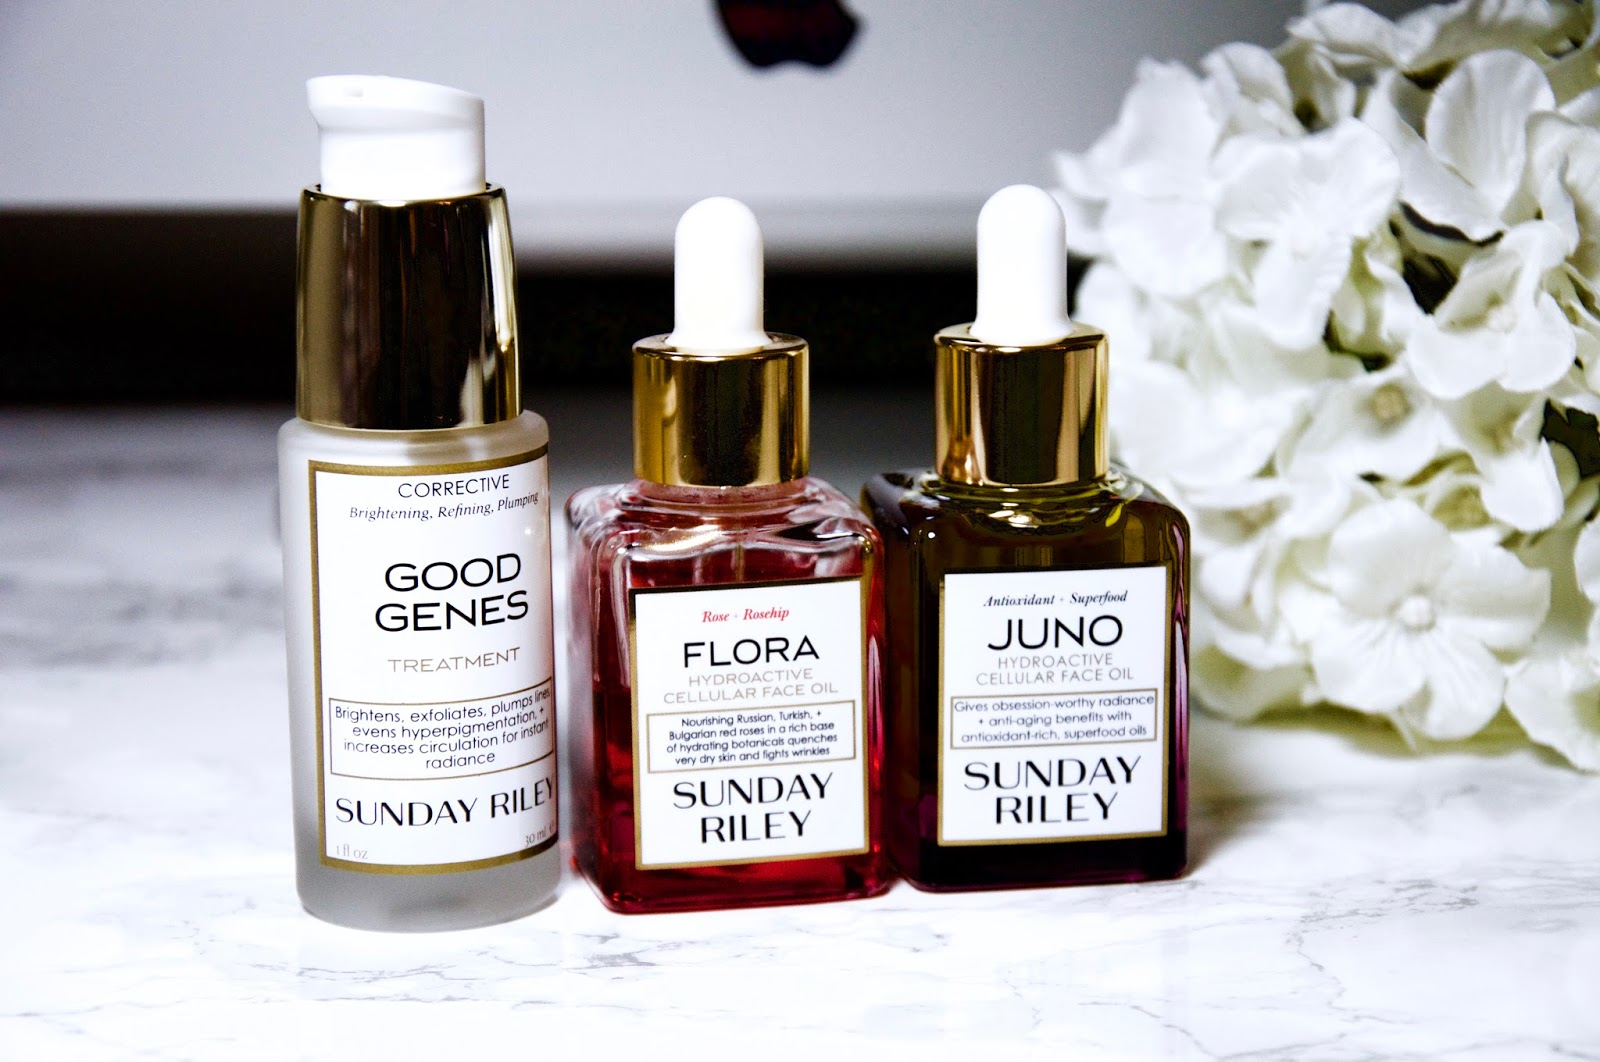 sunday riley,sunday riley good genes treatment review, sunday riley juno hydroactive cellular face oil review, sunday riiley flora hydroactive cellular face oil review.